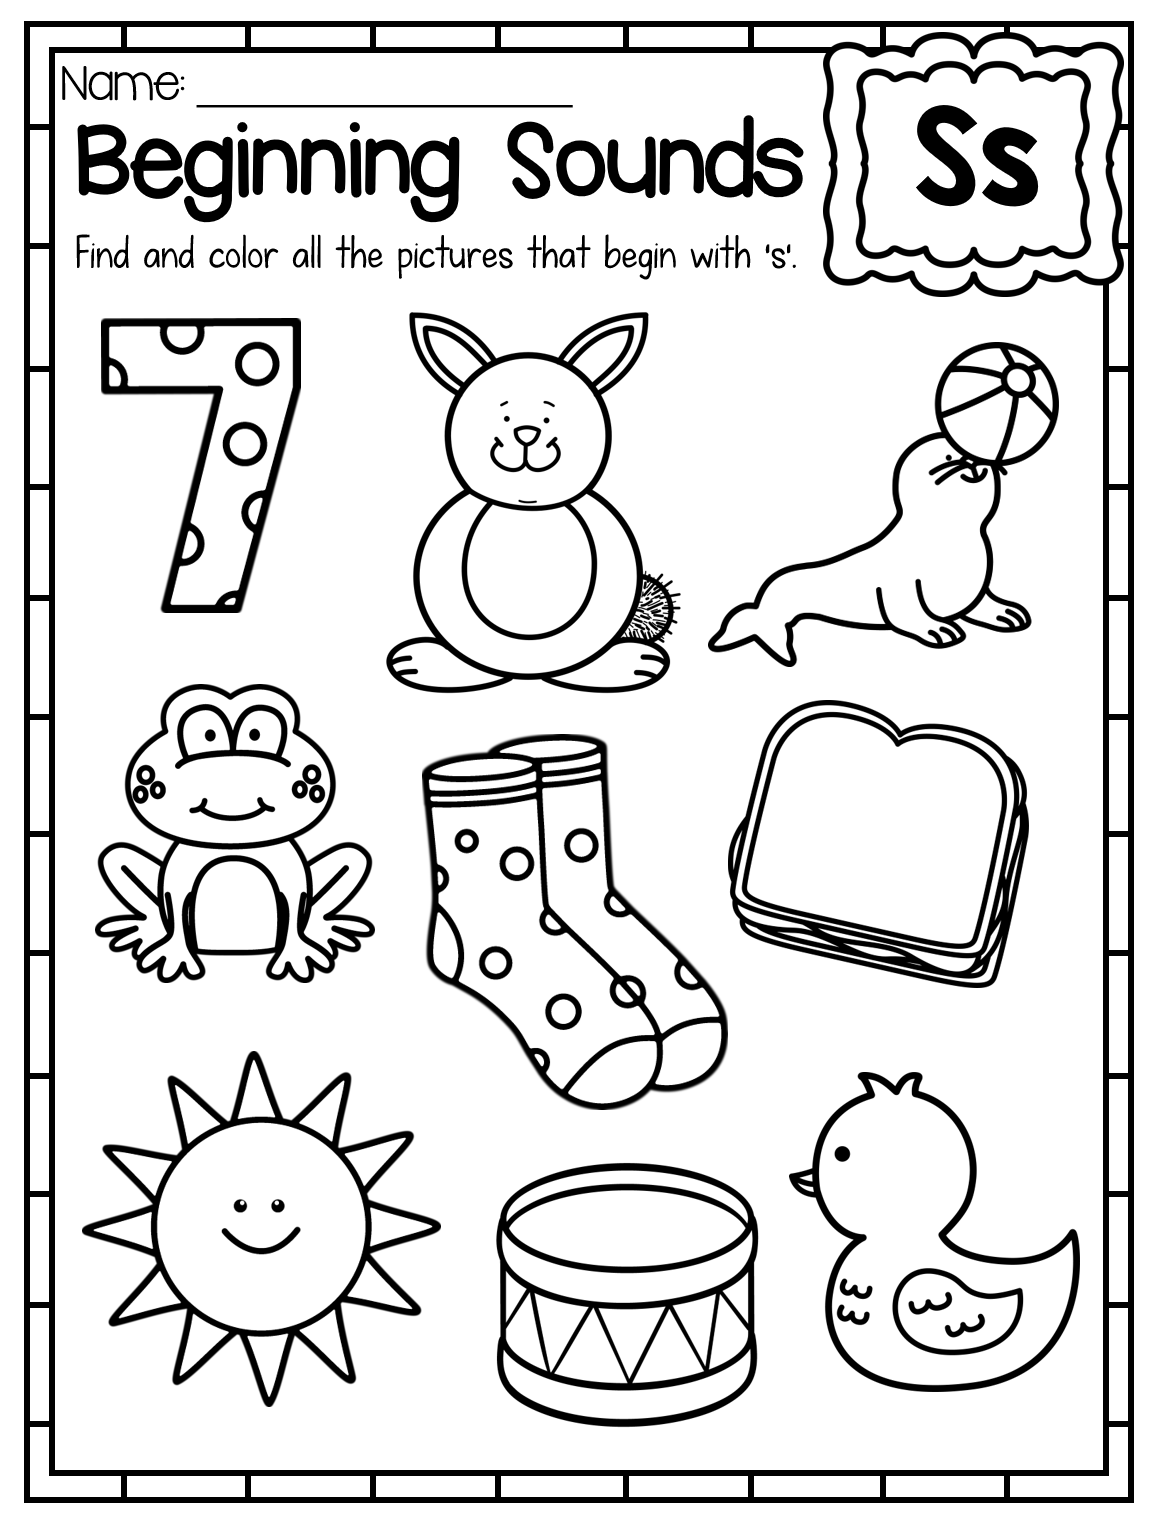 Beginning Sounds Worksheets - Color by Sound | Literacy ...